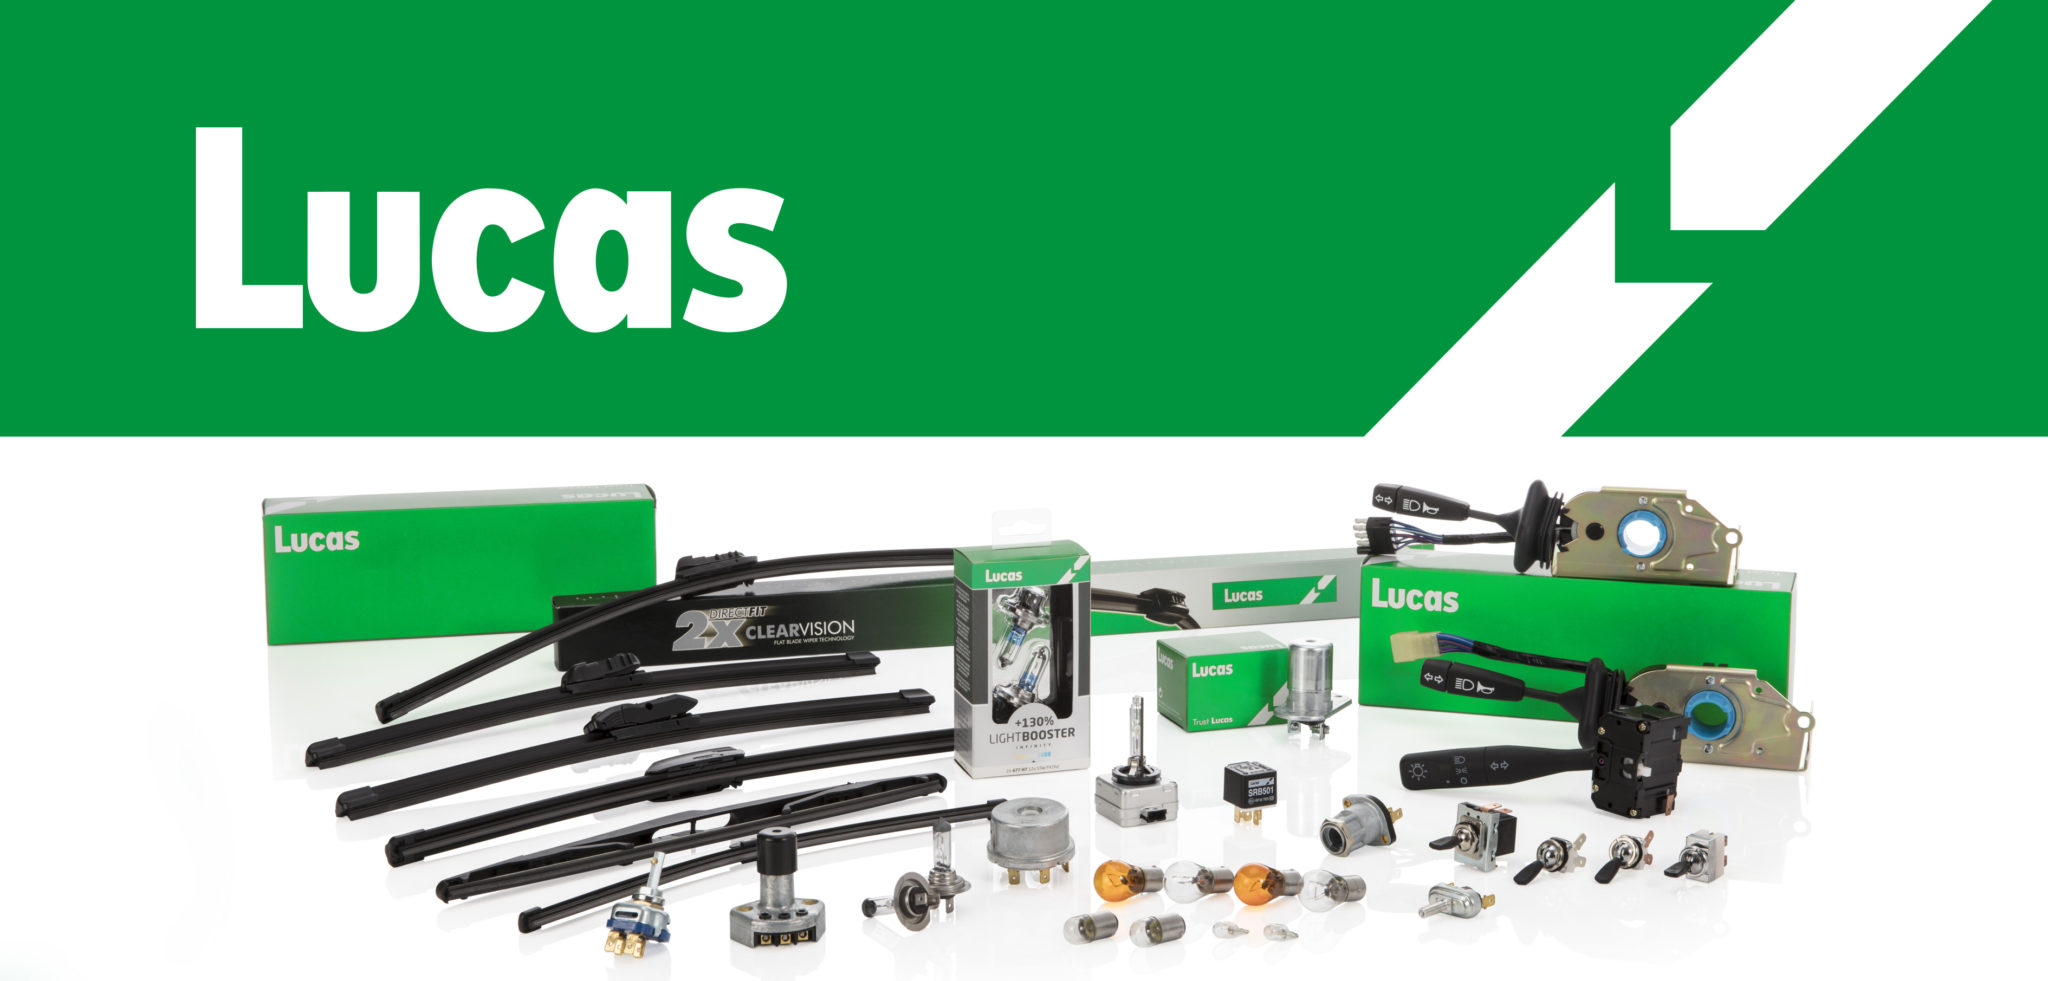 Lucas Vision and Control Products